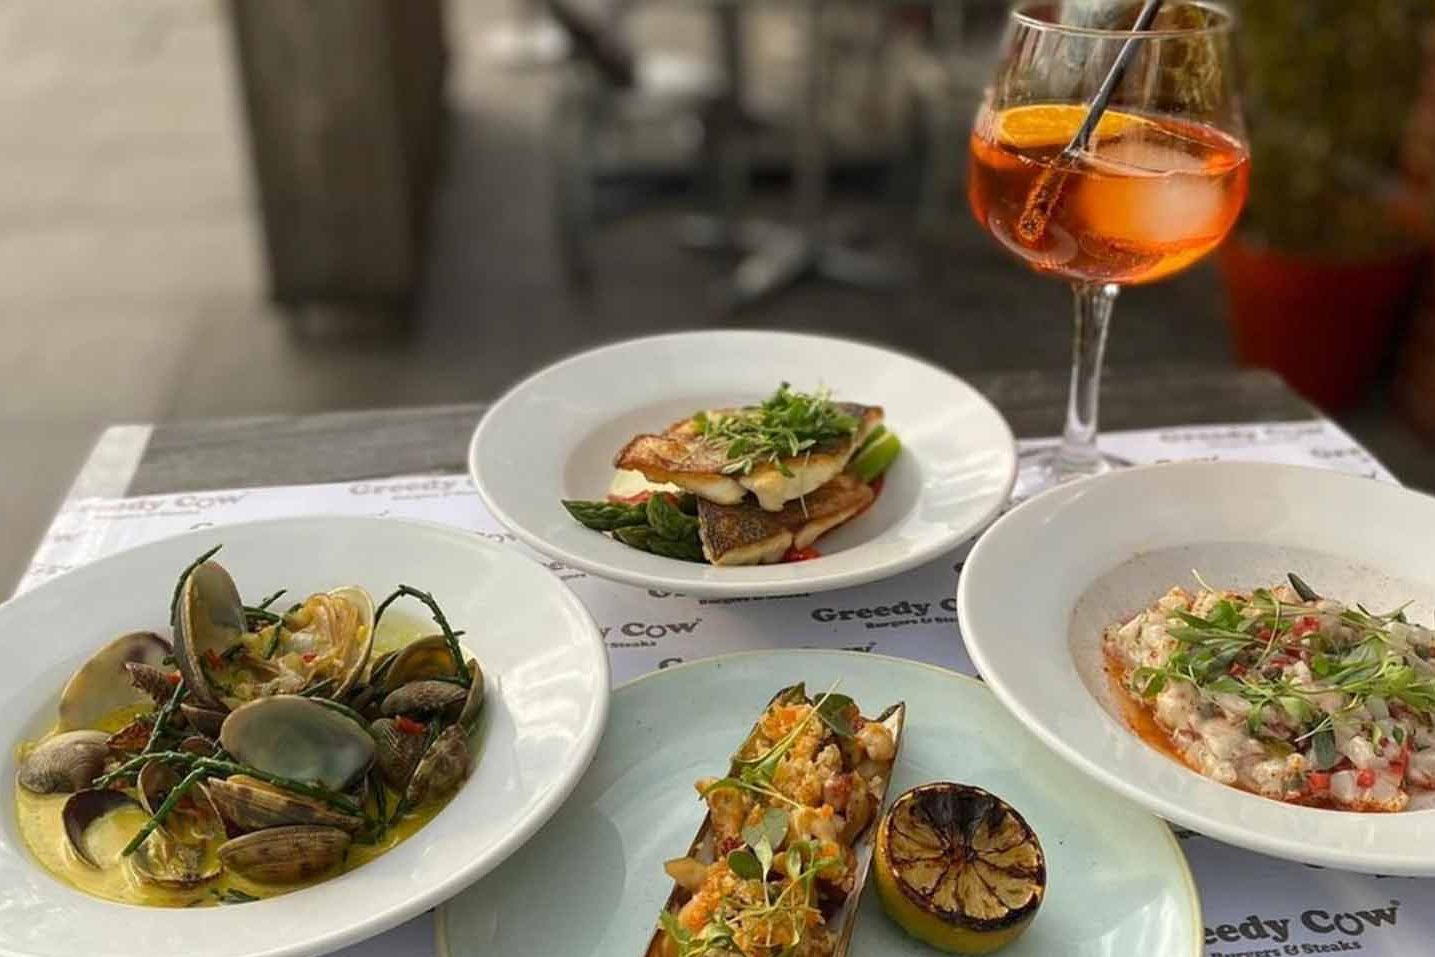 Four plates with a variety of fish dishes by Greedy Cow, with an Aperol Spritz in the background